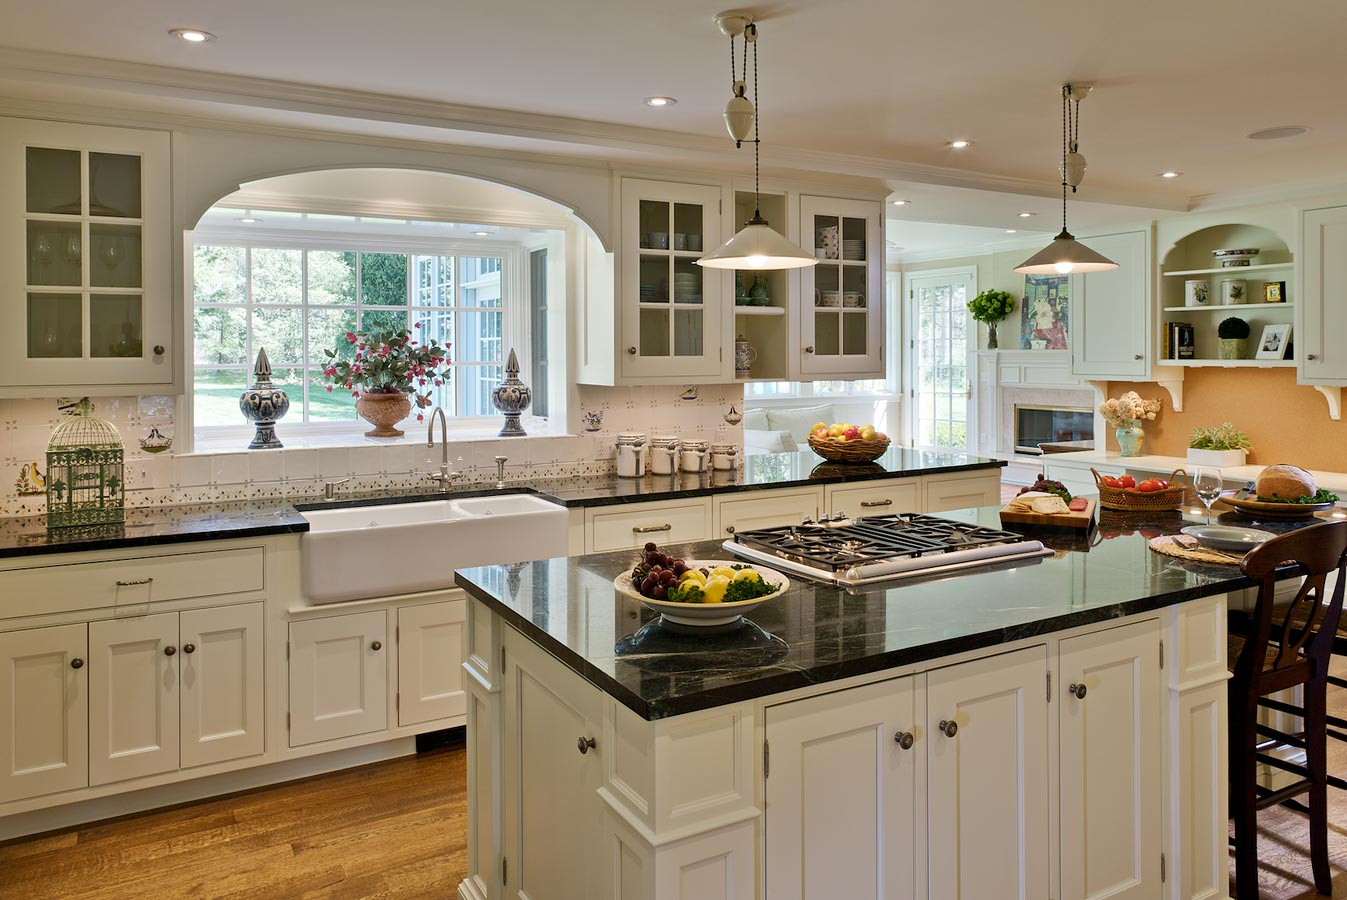 Winfield Dr., Princeton, NJ - Kitchen